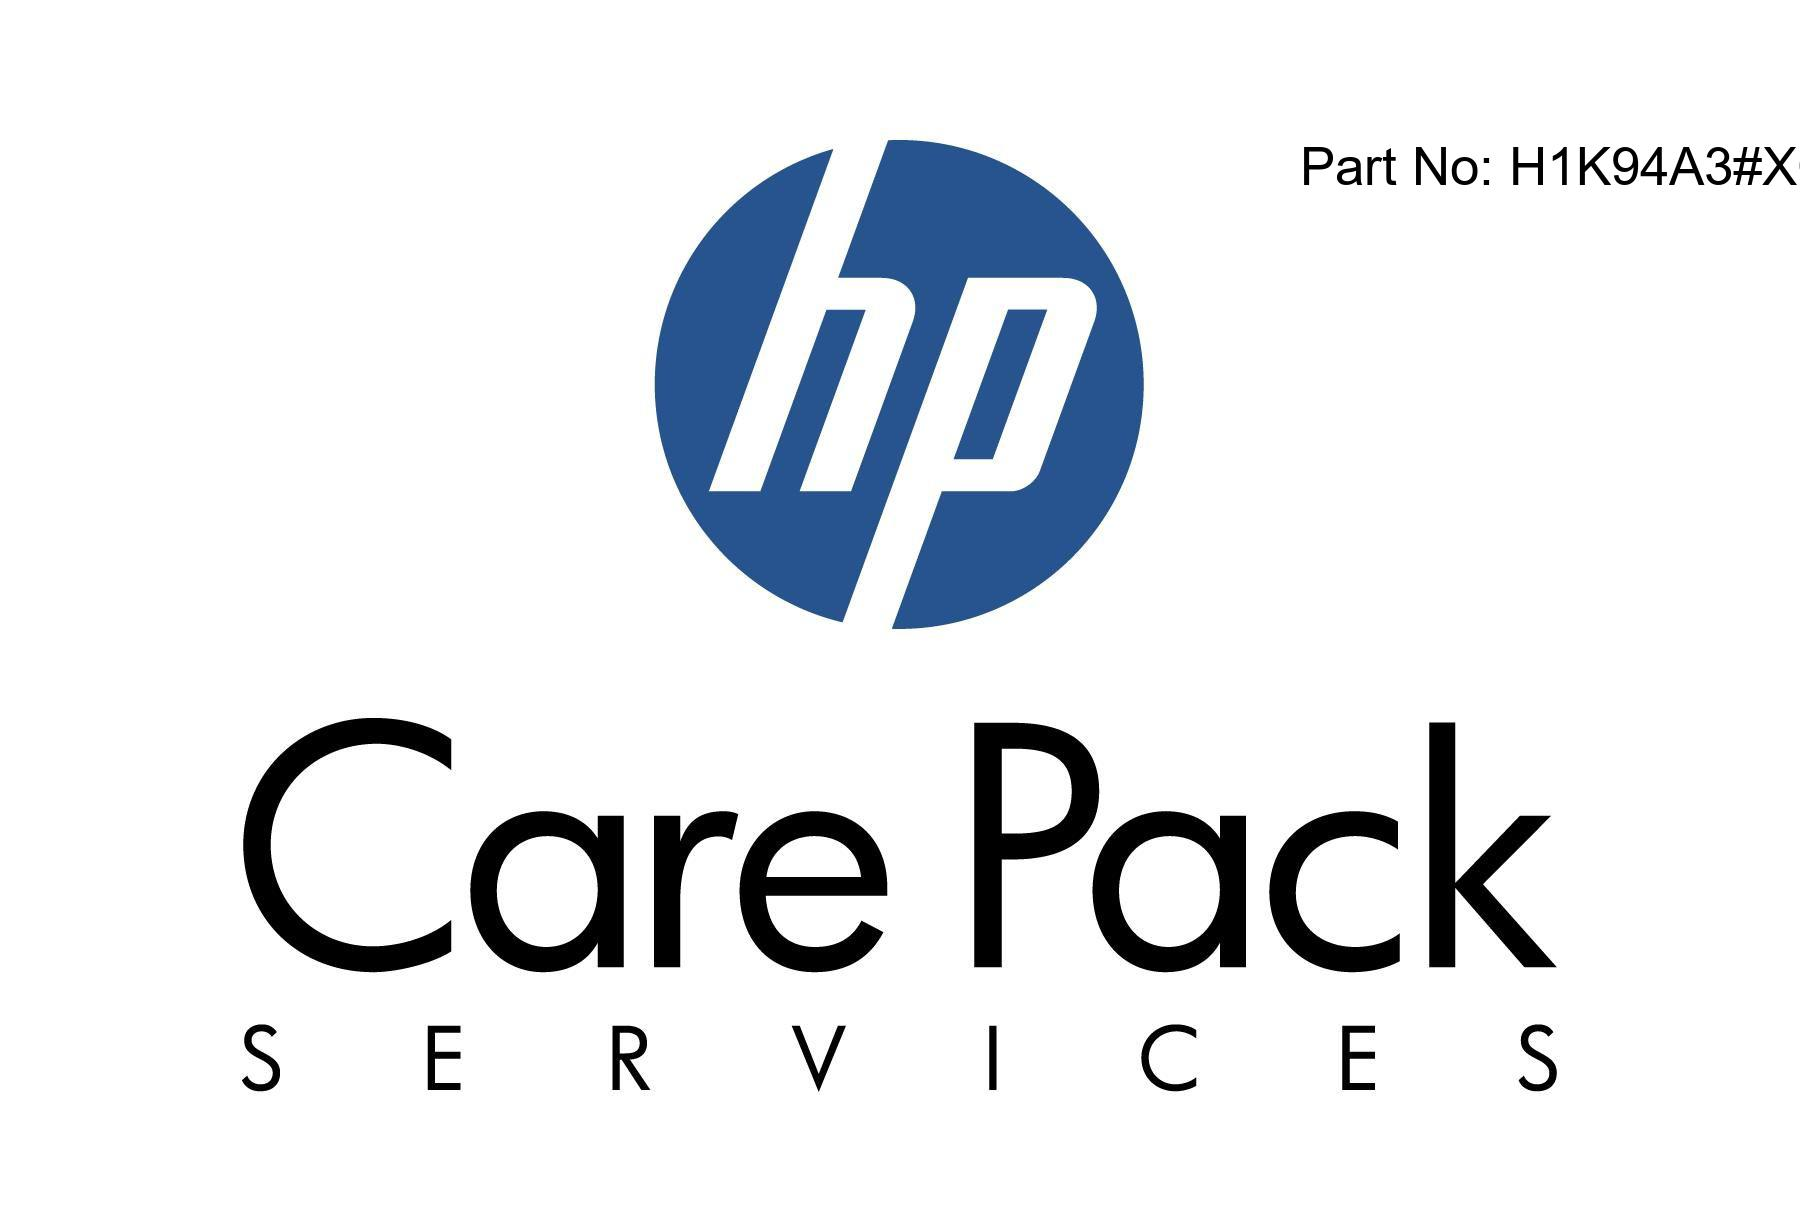 Proactive Care Call-To-Repair Service - Technical support - for HPE 3PAR 8400 Virtual Copy - 8 drives - phone consulting - 3 years - 24x7 - response time: 2 h